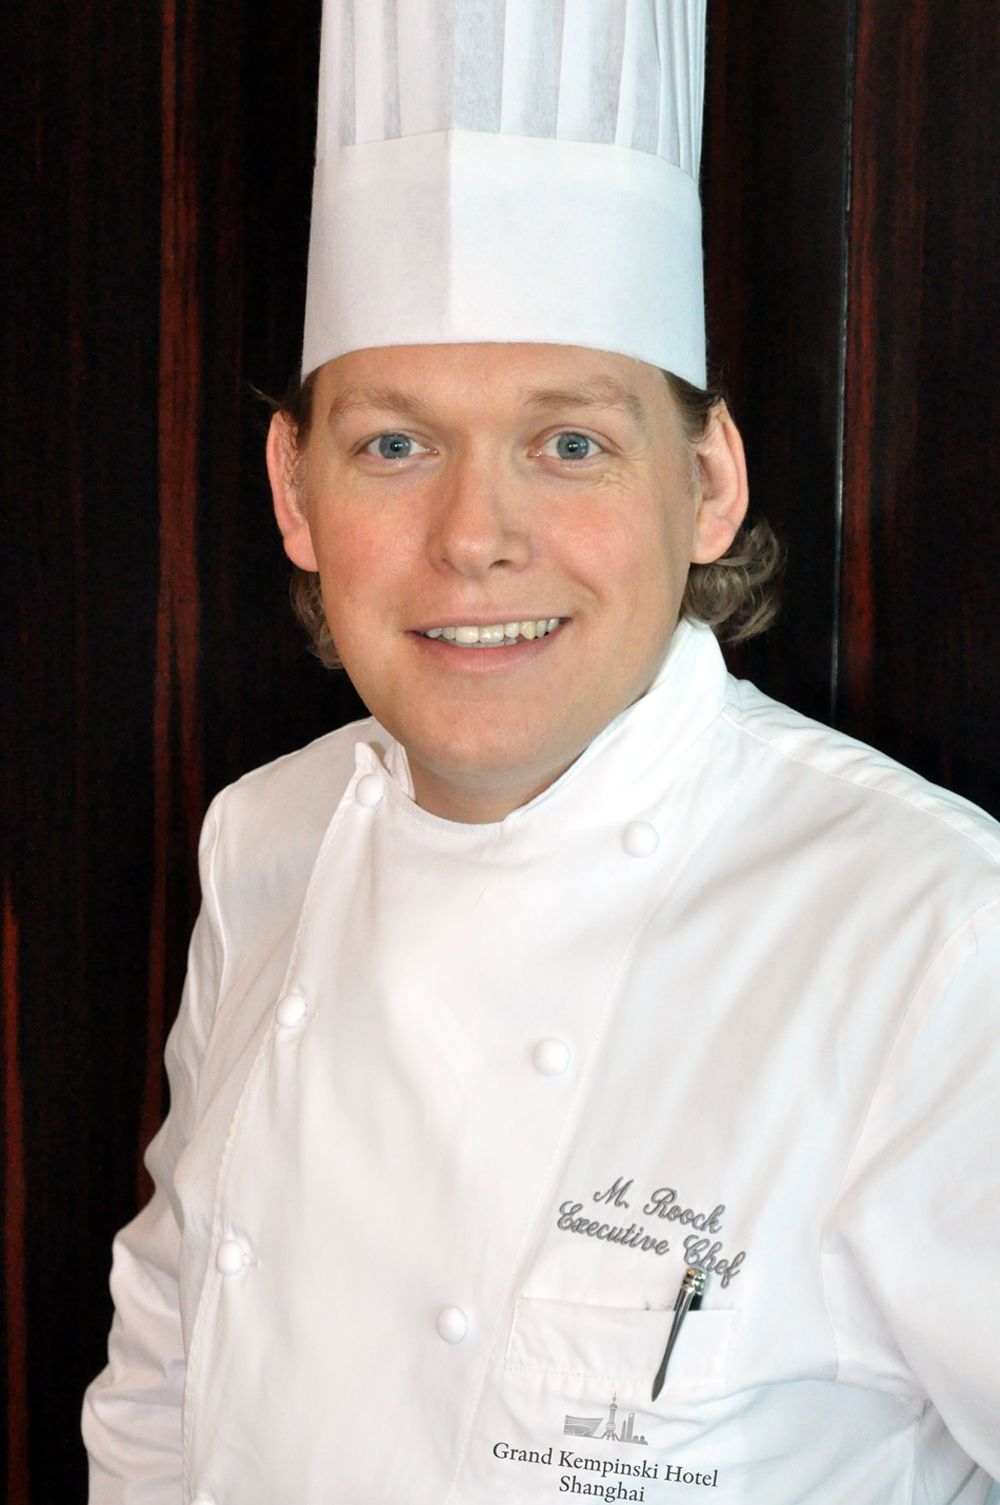 michelin starred chef mattias roock executive chef as grand michelin starred chef mattias roock executive chef as grand kempinski hotel shanghai michelinchef